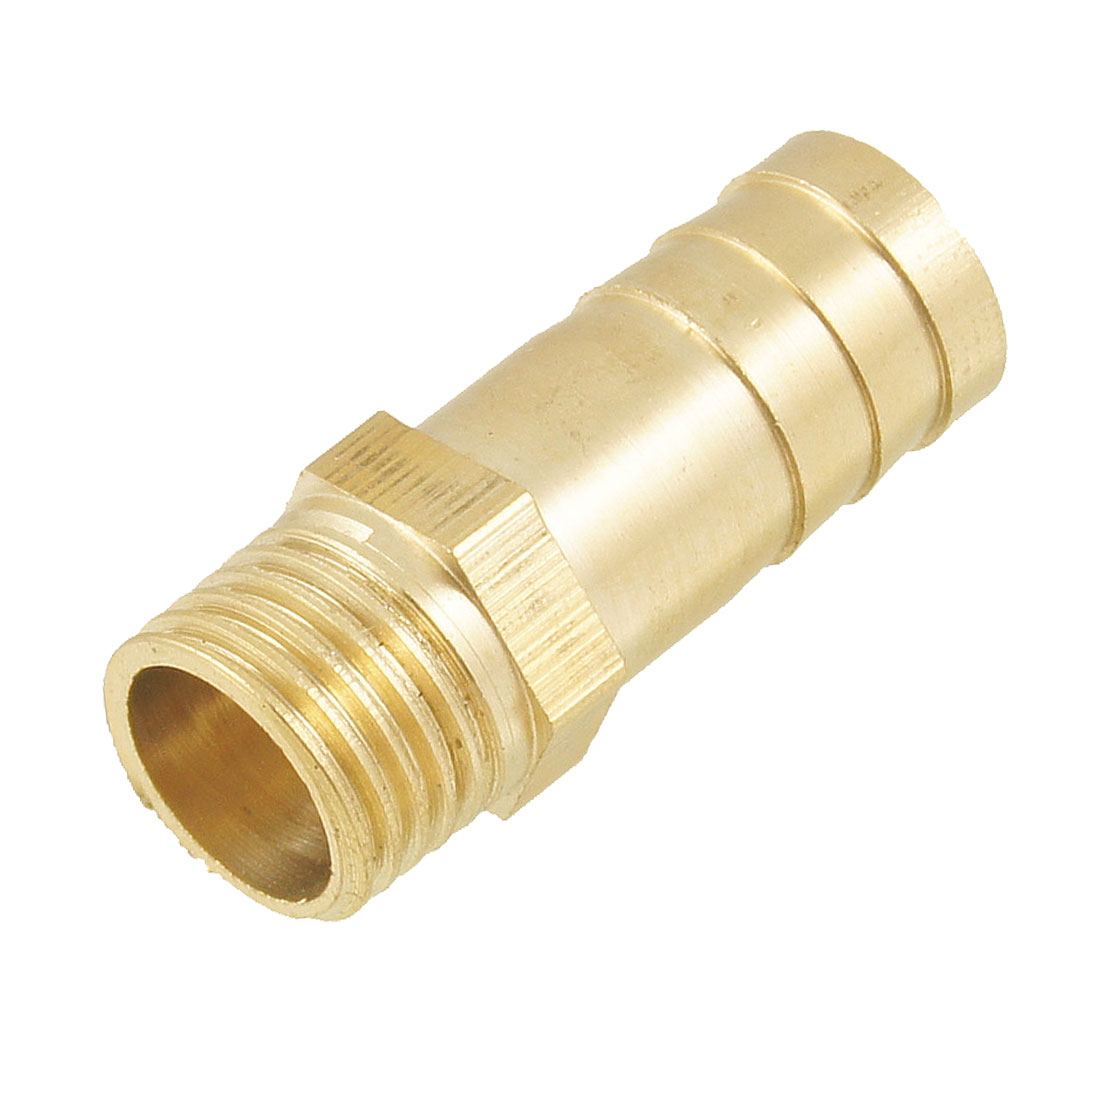 "Gold Tone Brass 12mm Fuel Gas Hose Barb 1/4"" PT Male Thread Coupling Fitting"